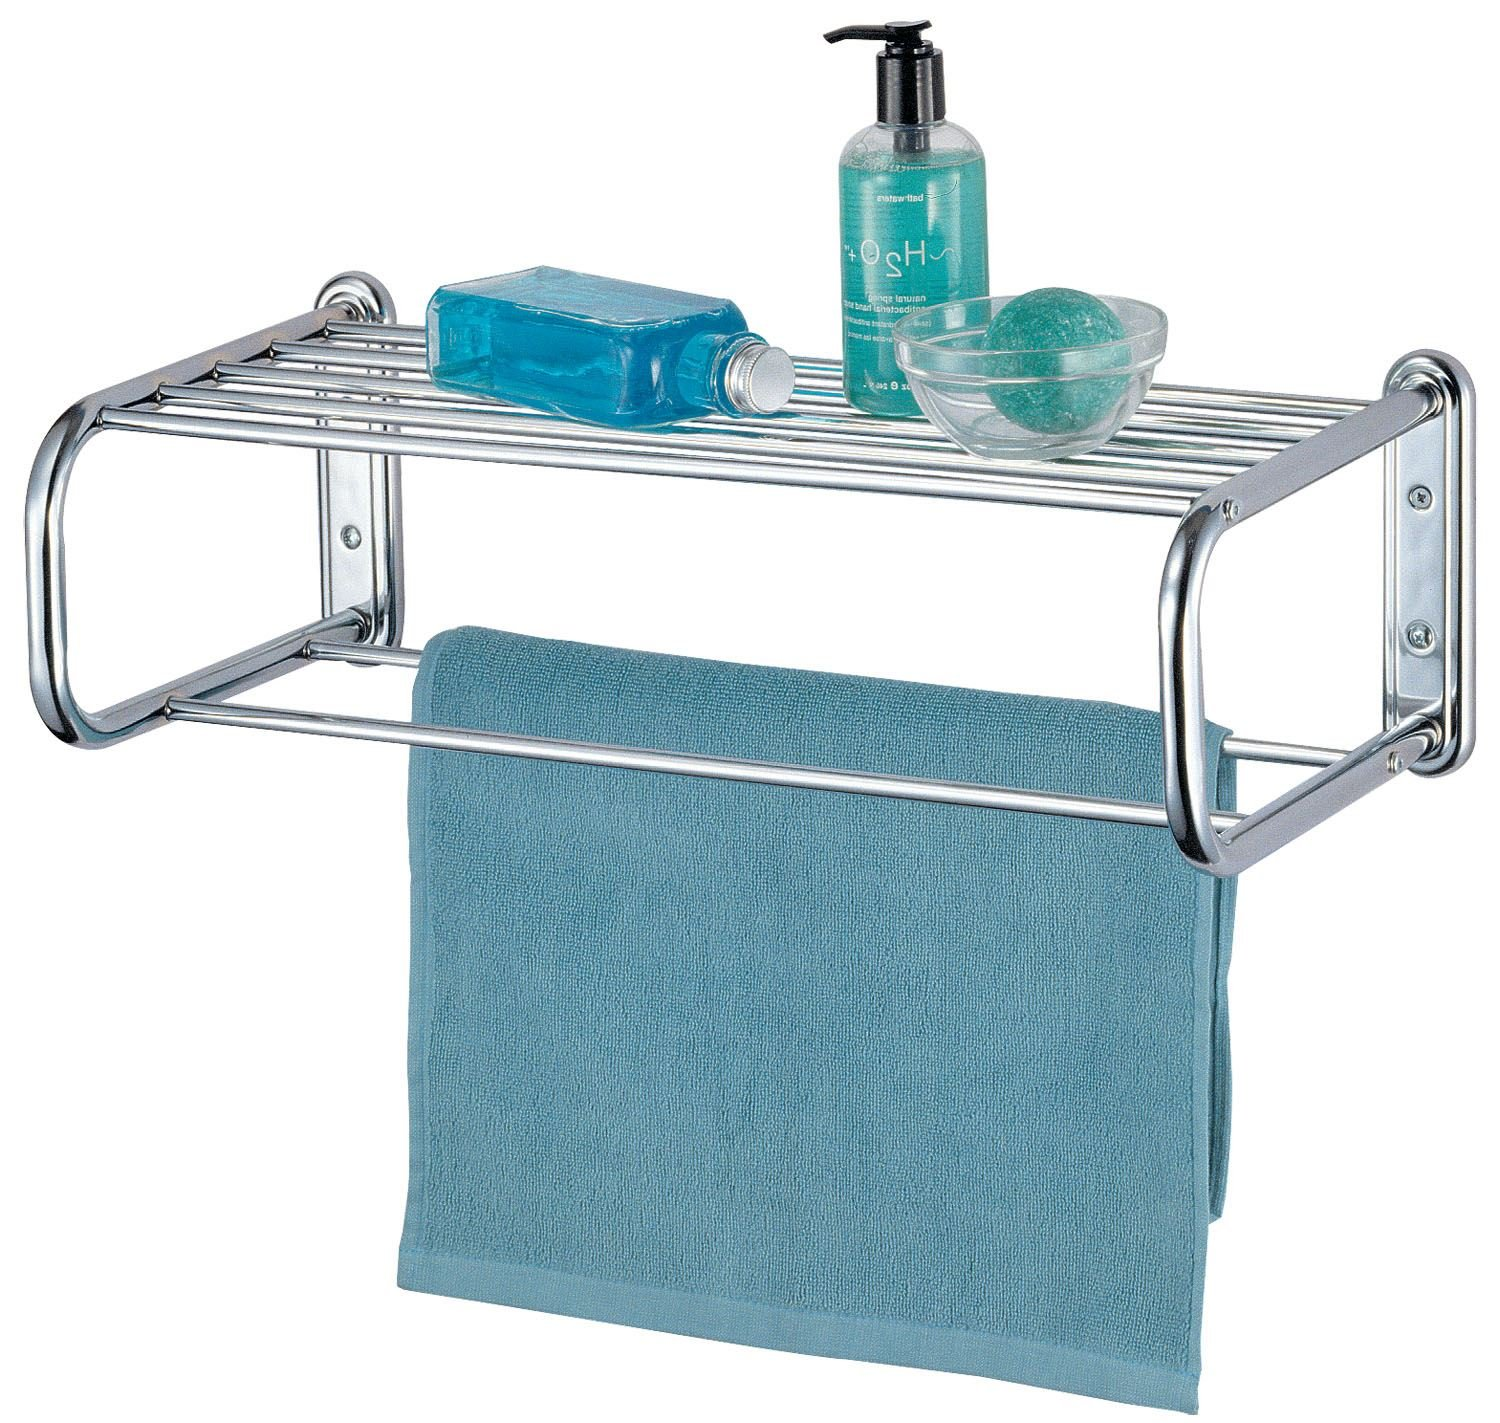 Bathroom Shelf And Towel Rail. Bathroom Towel Racks Hand Rack Oil ...